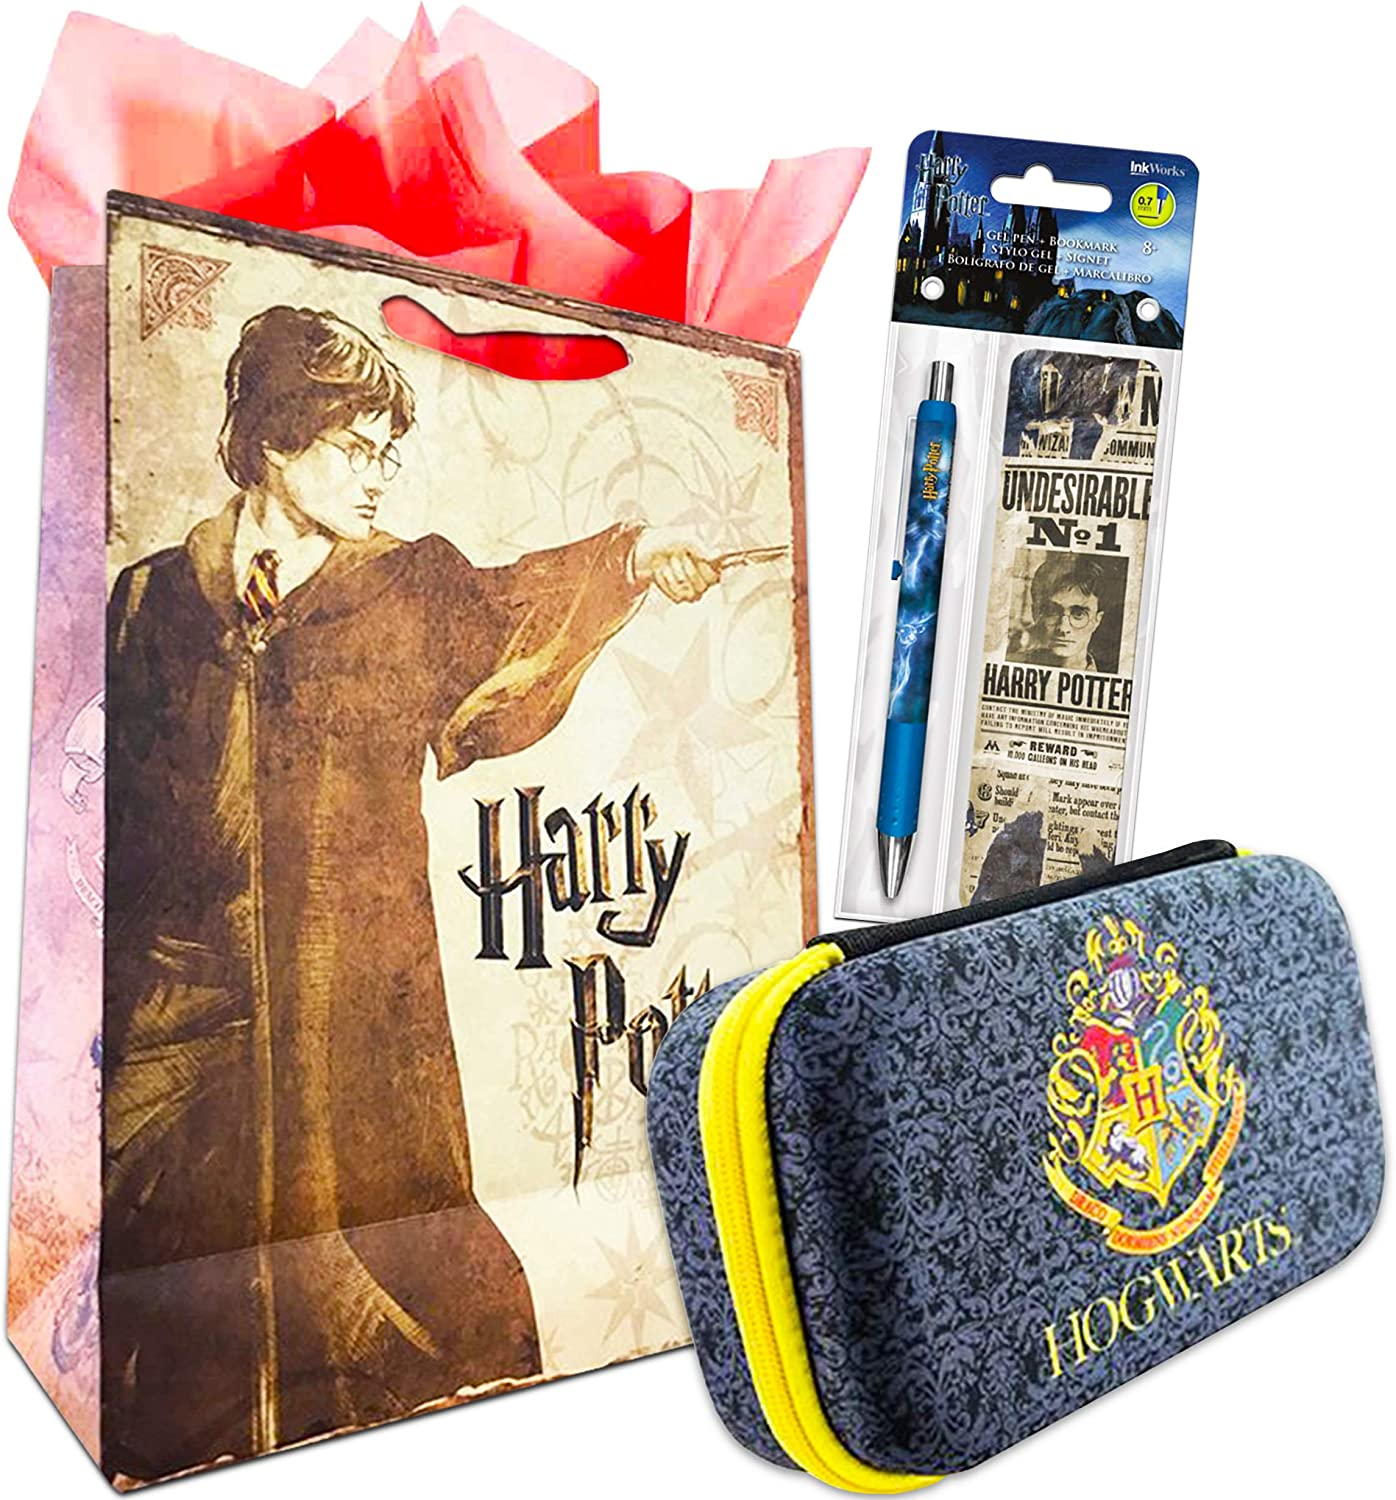 Harry Potter Pencil Case School Supplies Set ~ Deluxe Harry Potter Pencil Holder Box with Premium Gel Pen, Bookmark, and Gift Bag Bundle | Office Supplies | Gifts | Harry Potter Merchandise